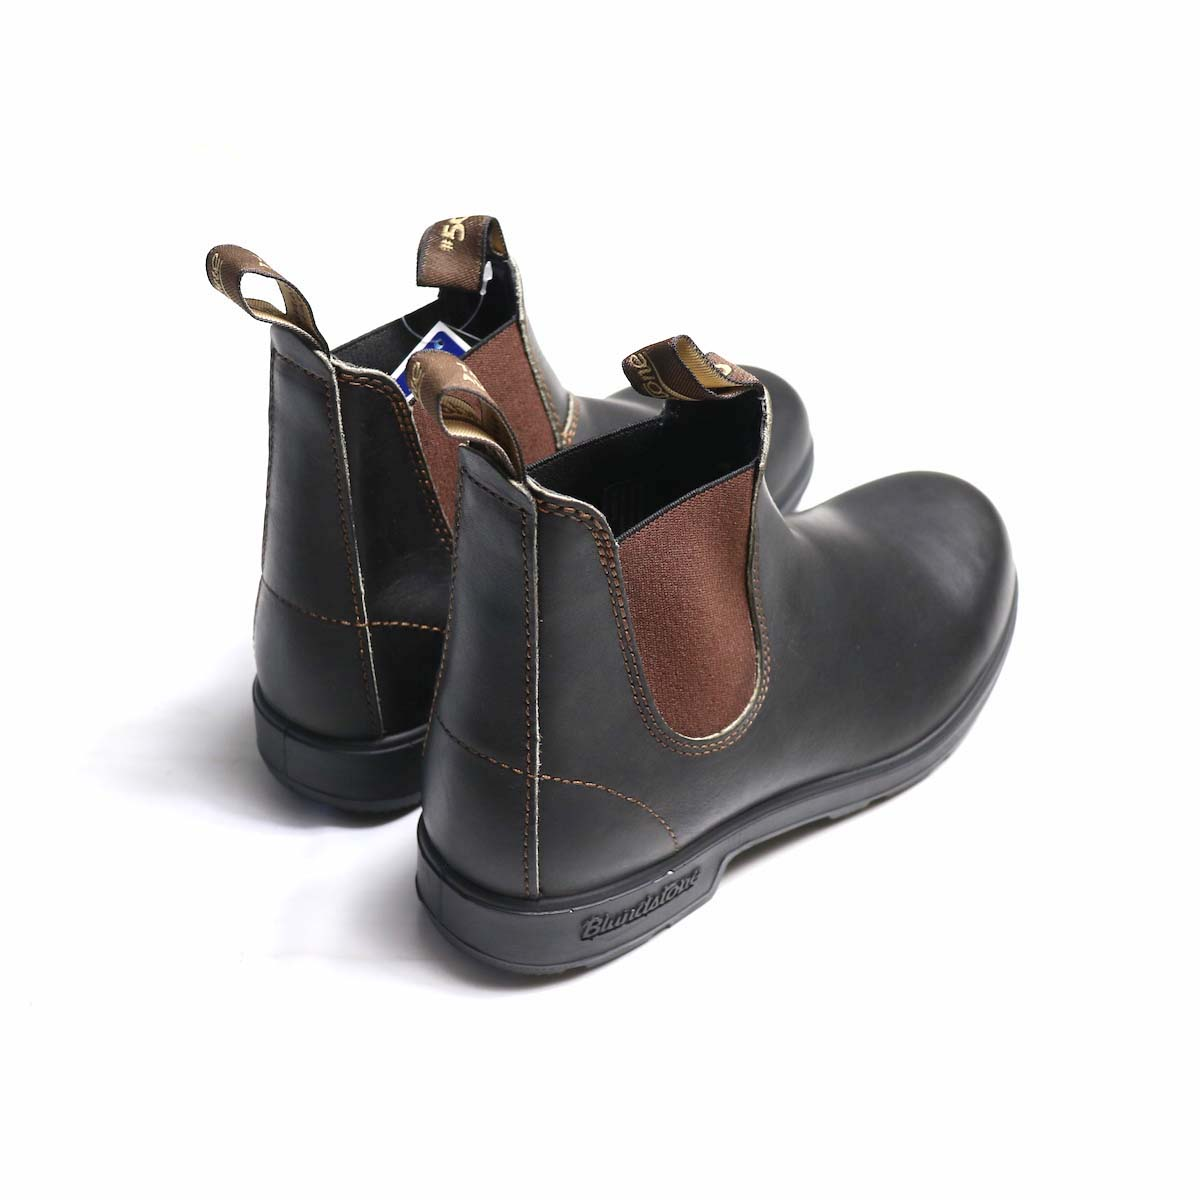 BLUNDSTONE / Side Gore Boots #500 (Brown) 背面から